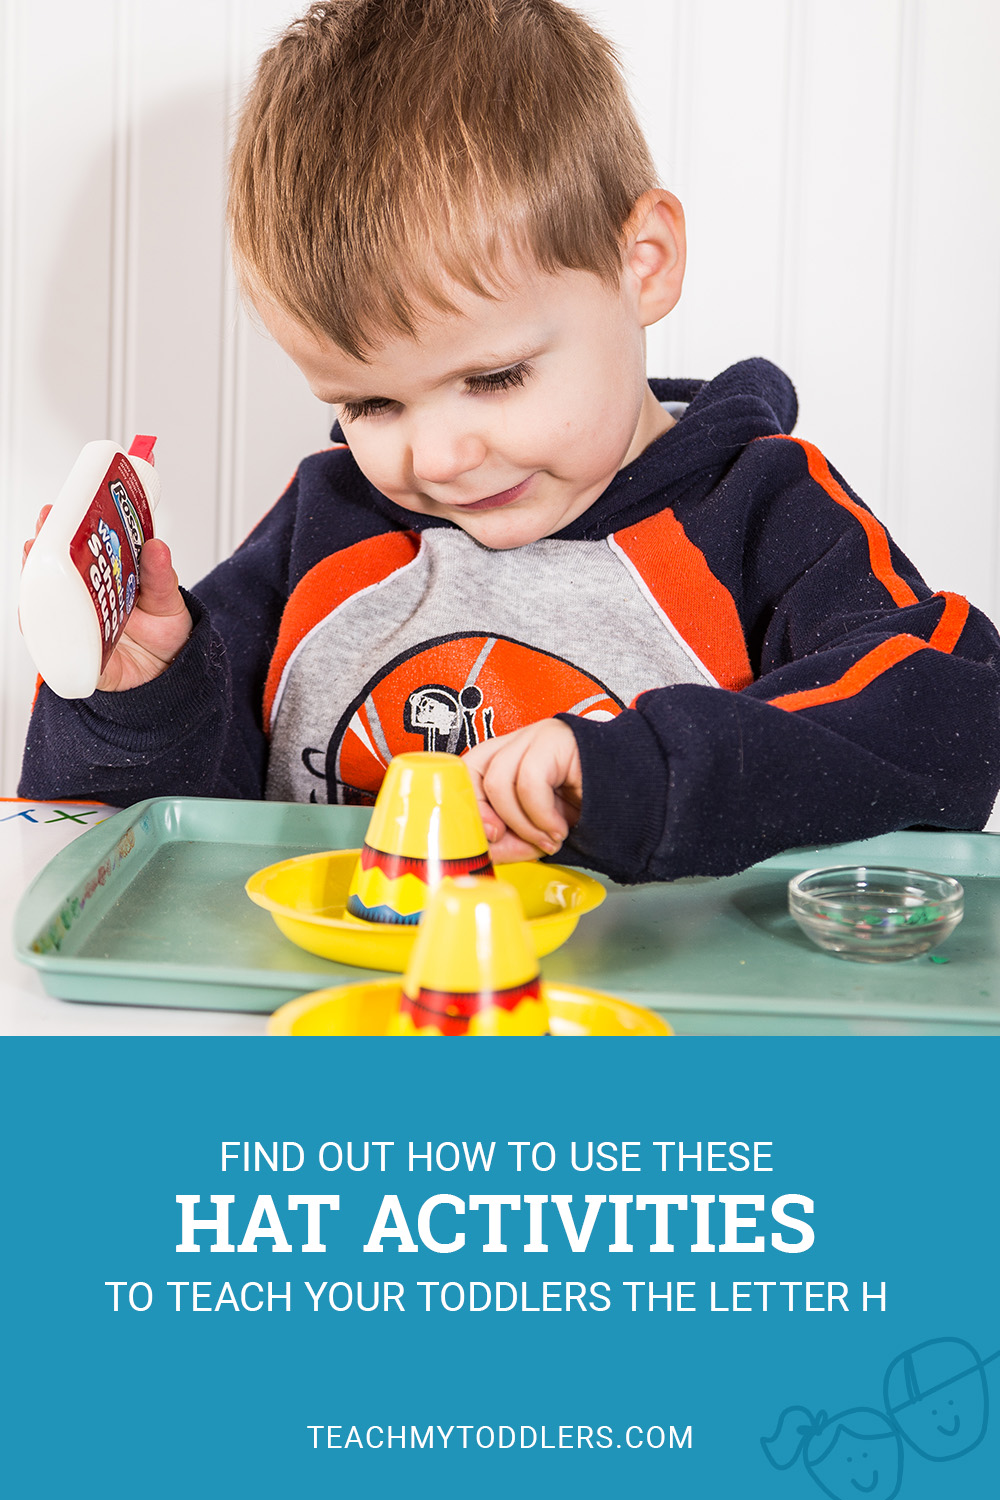 Find out how to use these h is for hat activities to teach your toddlers the letter h